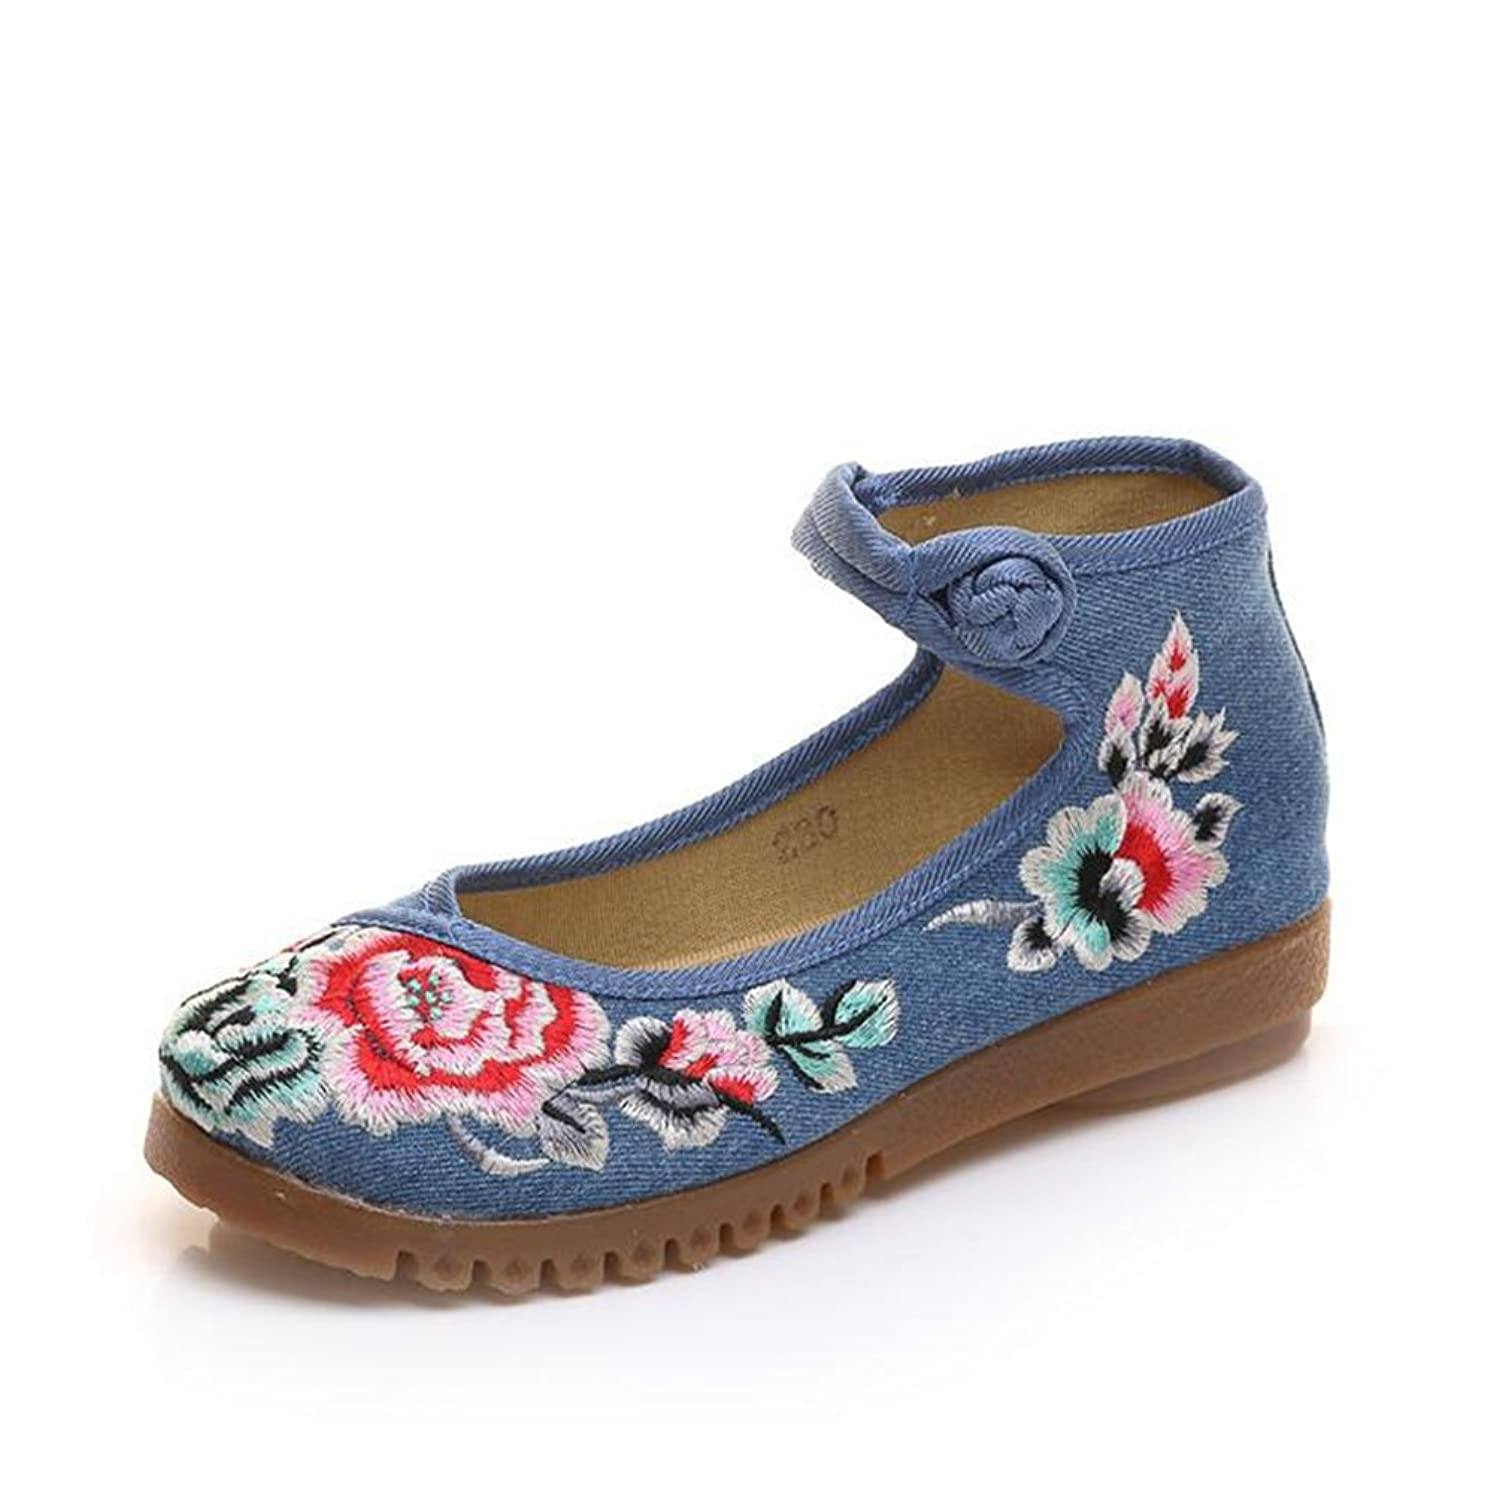 ZYZF Women's Peony Embroidery Rubber Sole Ankle Belt Mary Jane Shoes